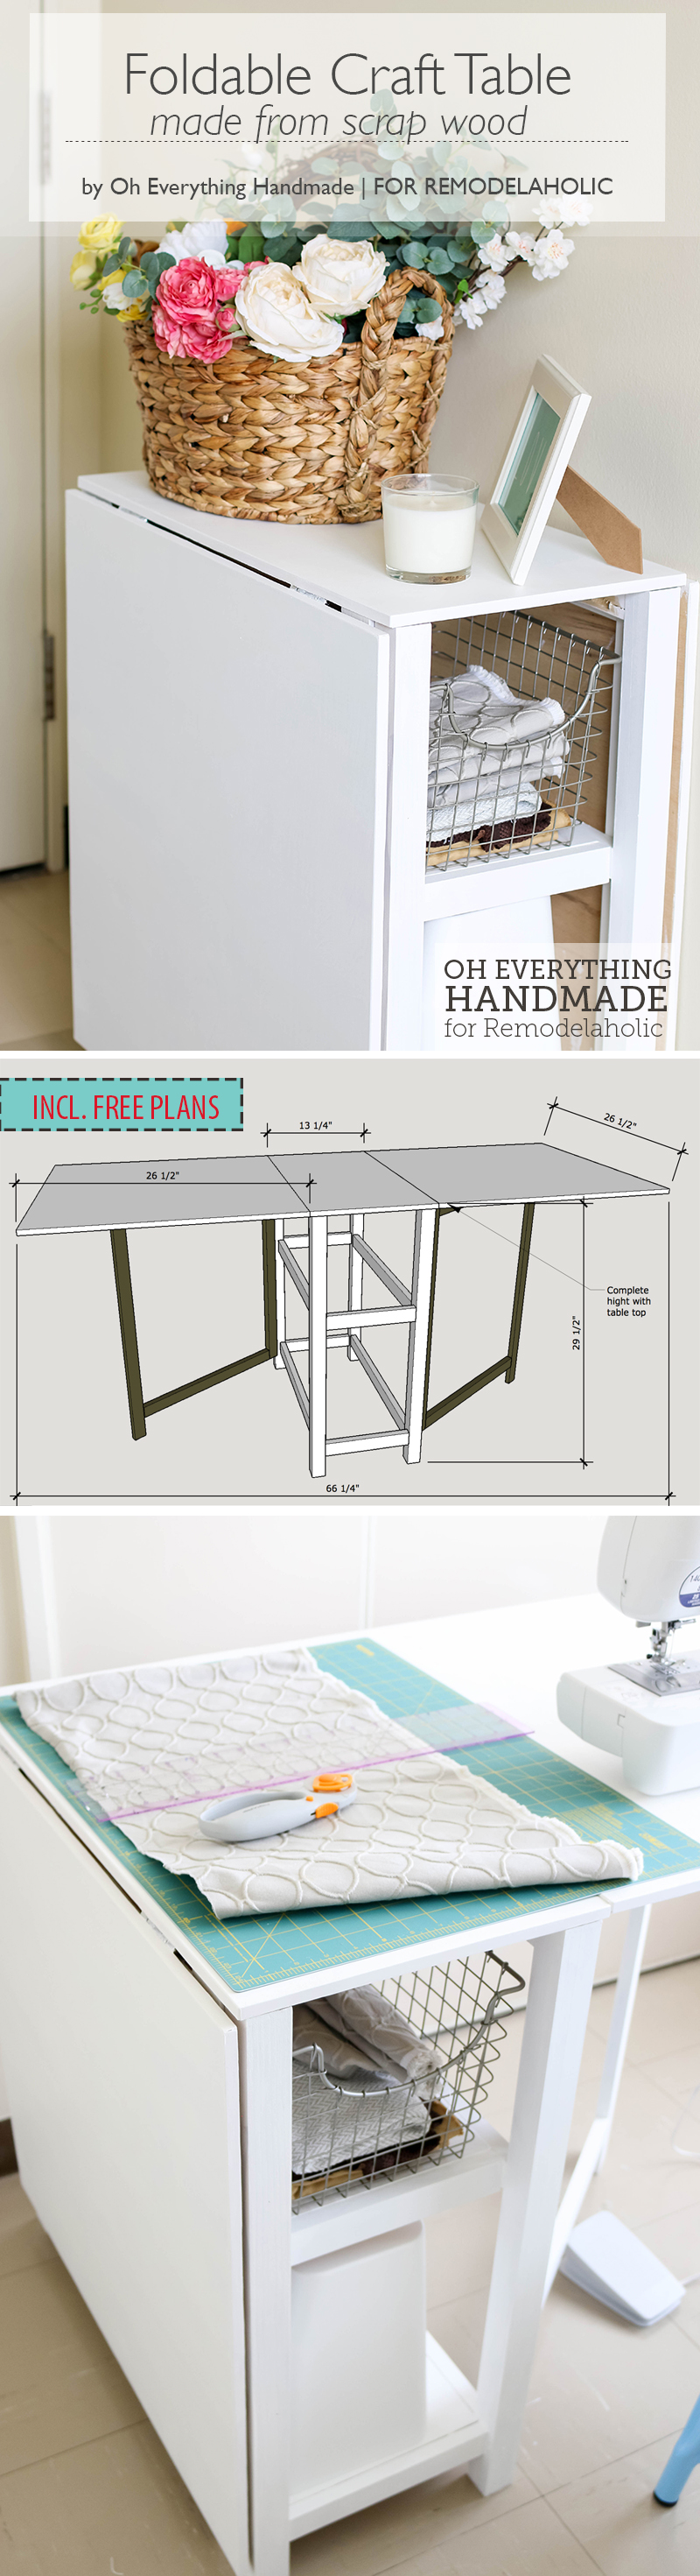 Make Your Small Craft Area Work With This Space Conscious DIY Foldable  Craft Table,